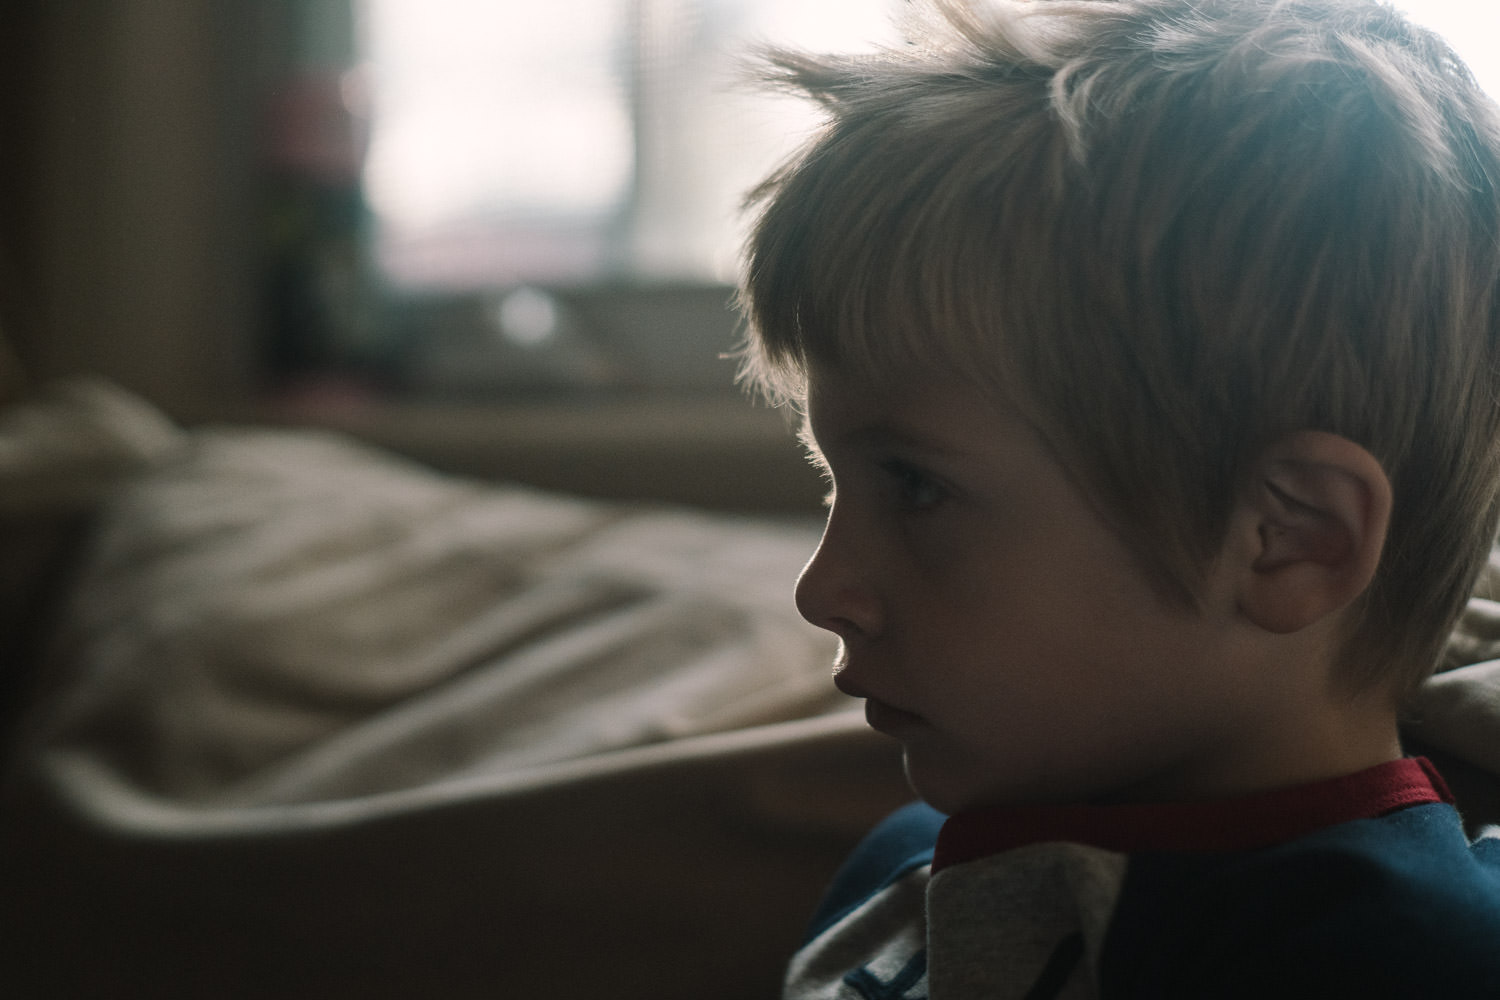 The profile of a little boy.